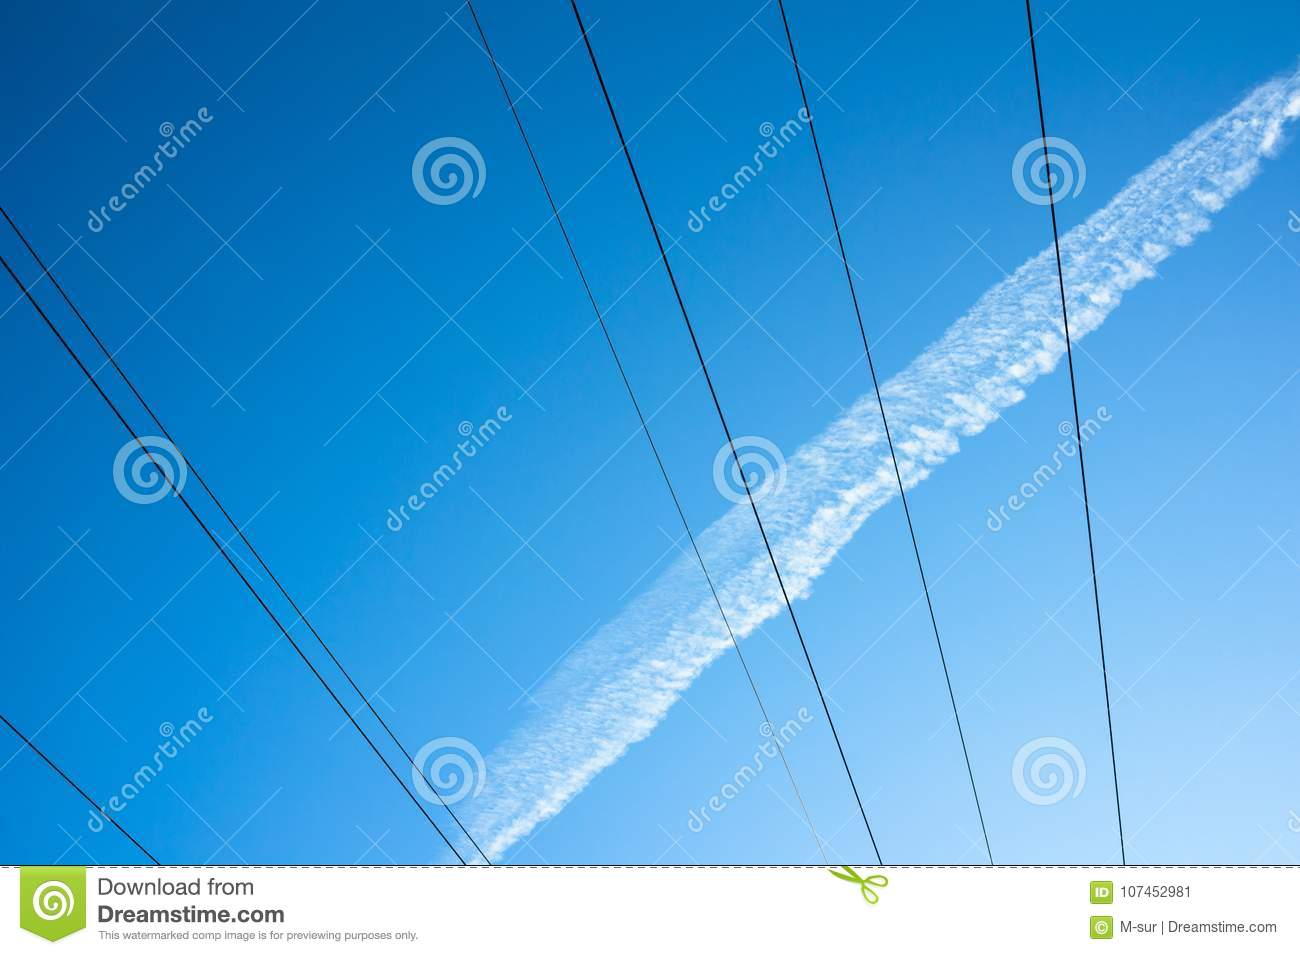 Clear Blue Sky And Wires And Tracks Stock Image - Image of transport ...